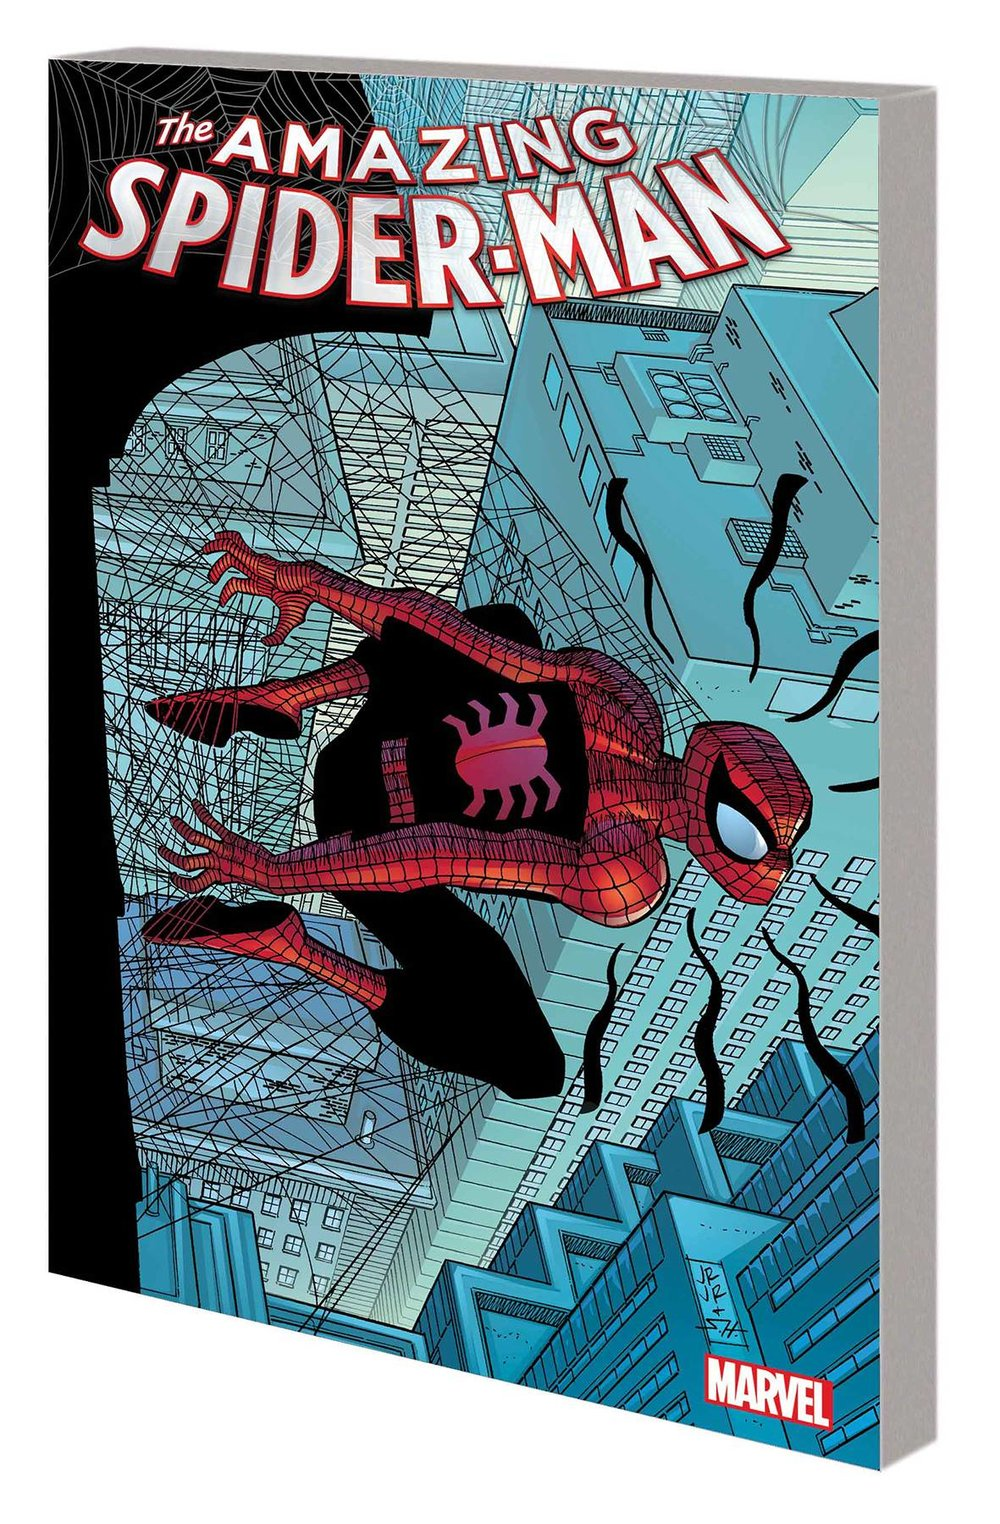 SPIDER-MAN REVENGE OF THE GREEN GOBLIN TP NEW PTG.jpg